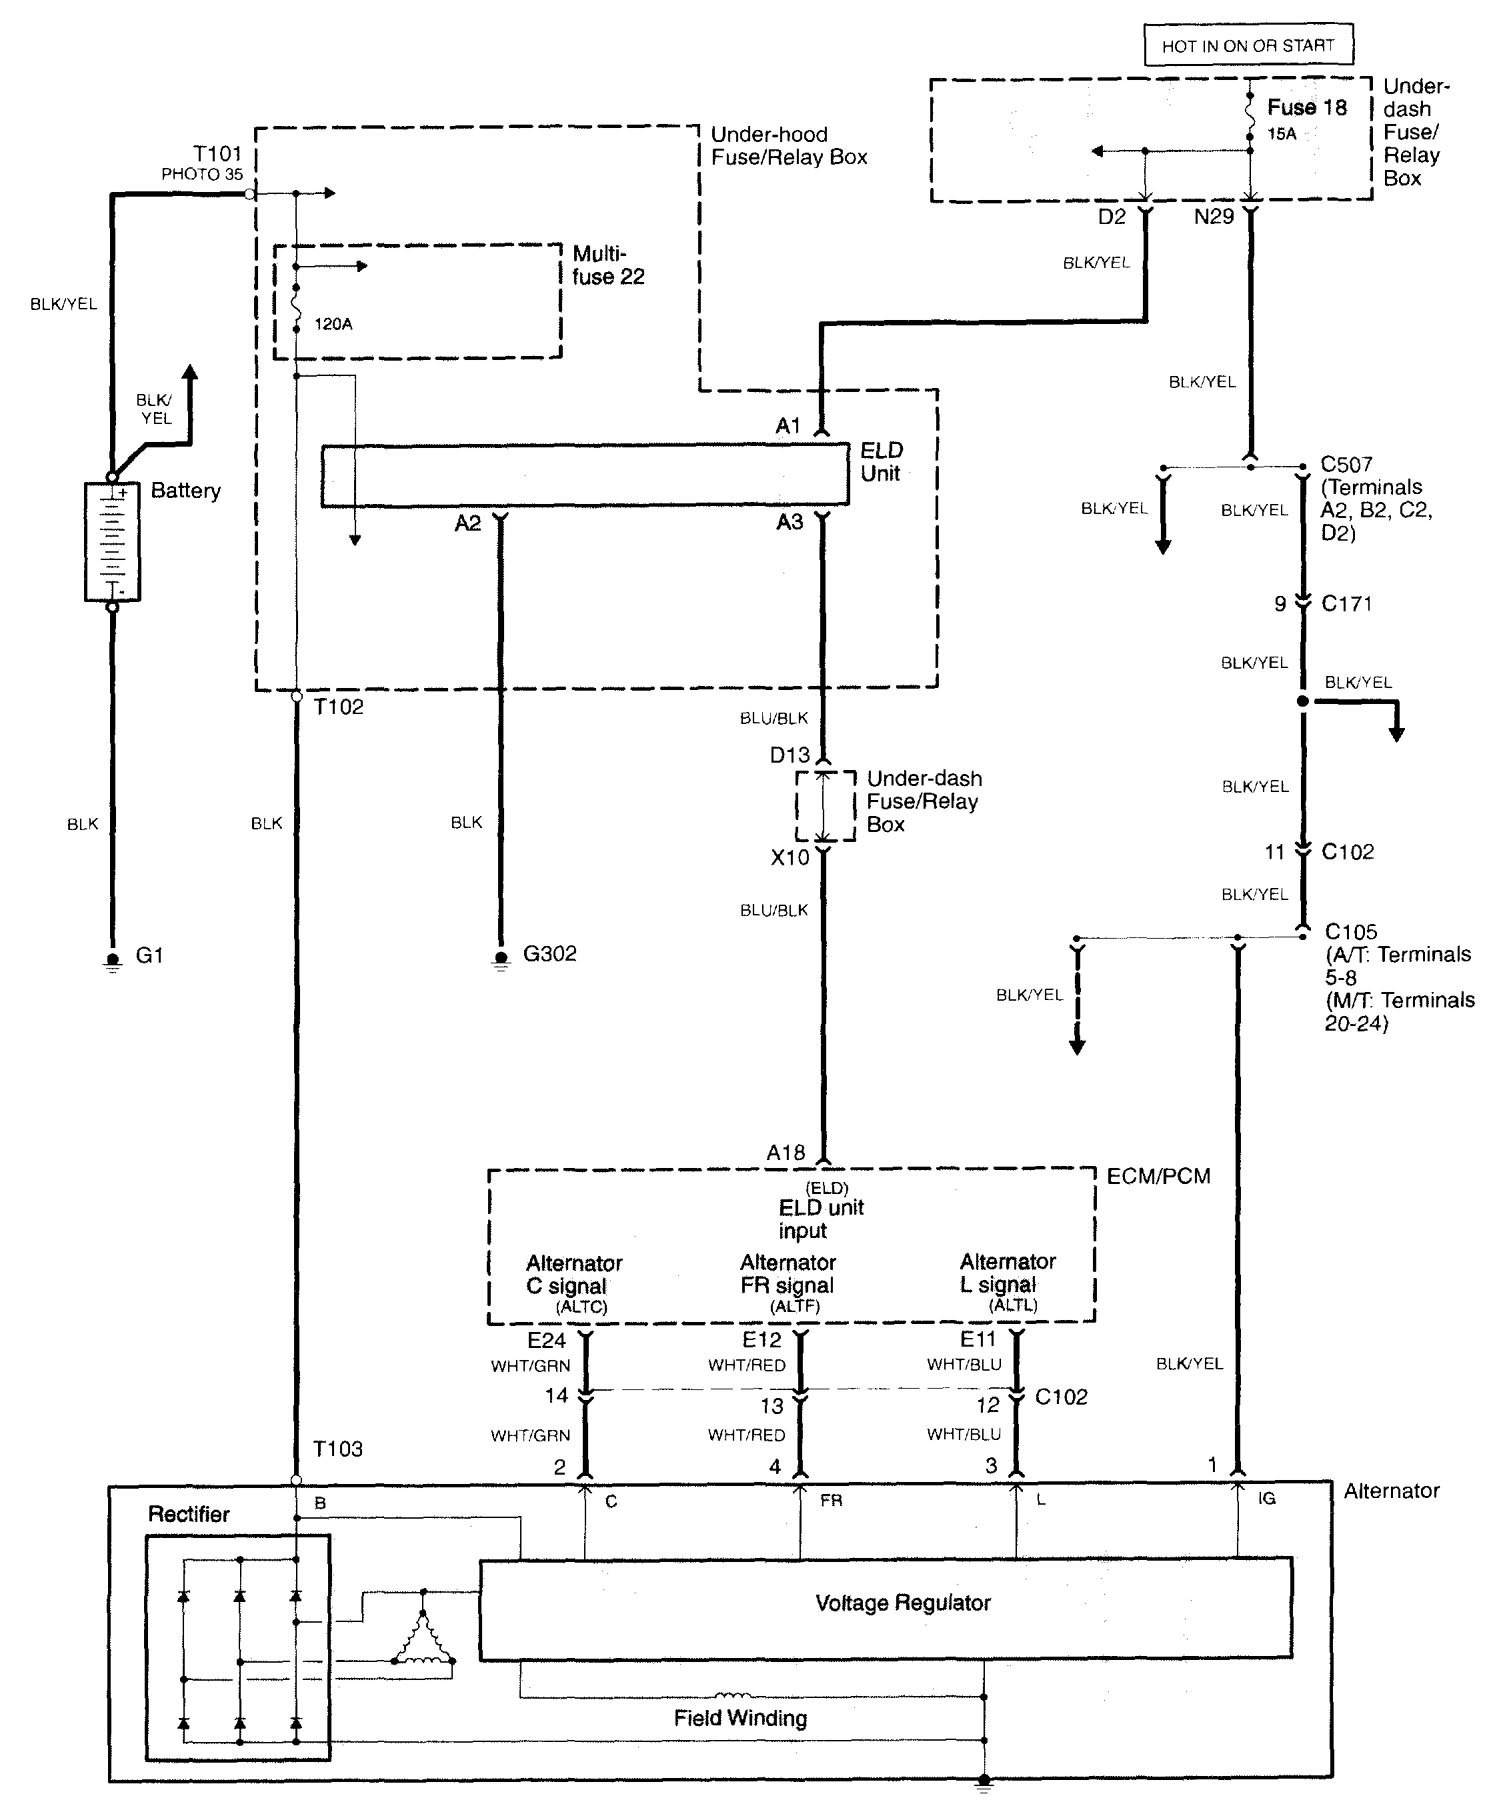 Acura TL (2006) - wiring diagrams - charging system - Carknowledge.info | Acura Tl 2006 Wiring Diagram |  | Carknowledge.info